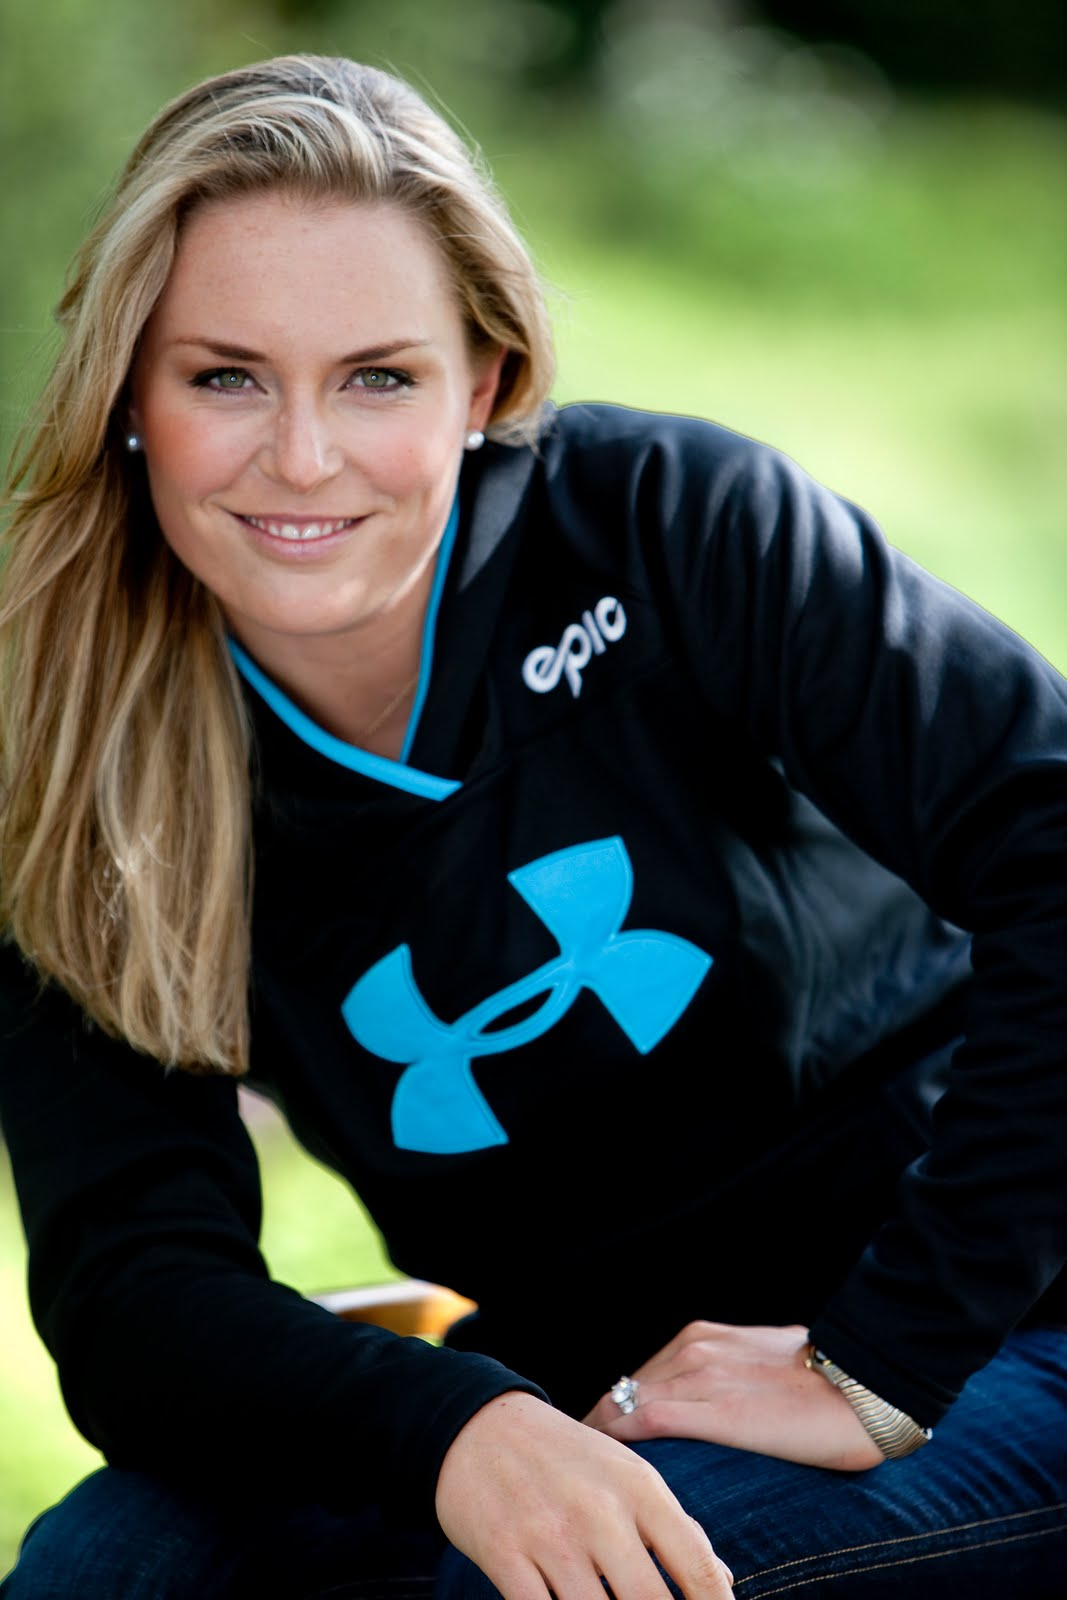 Choosing Wallpaper Inside And Outside The Match Lindsey Vonn